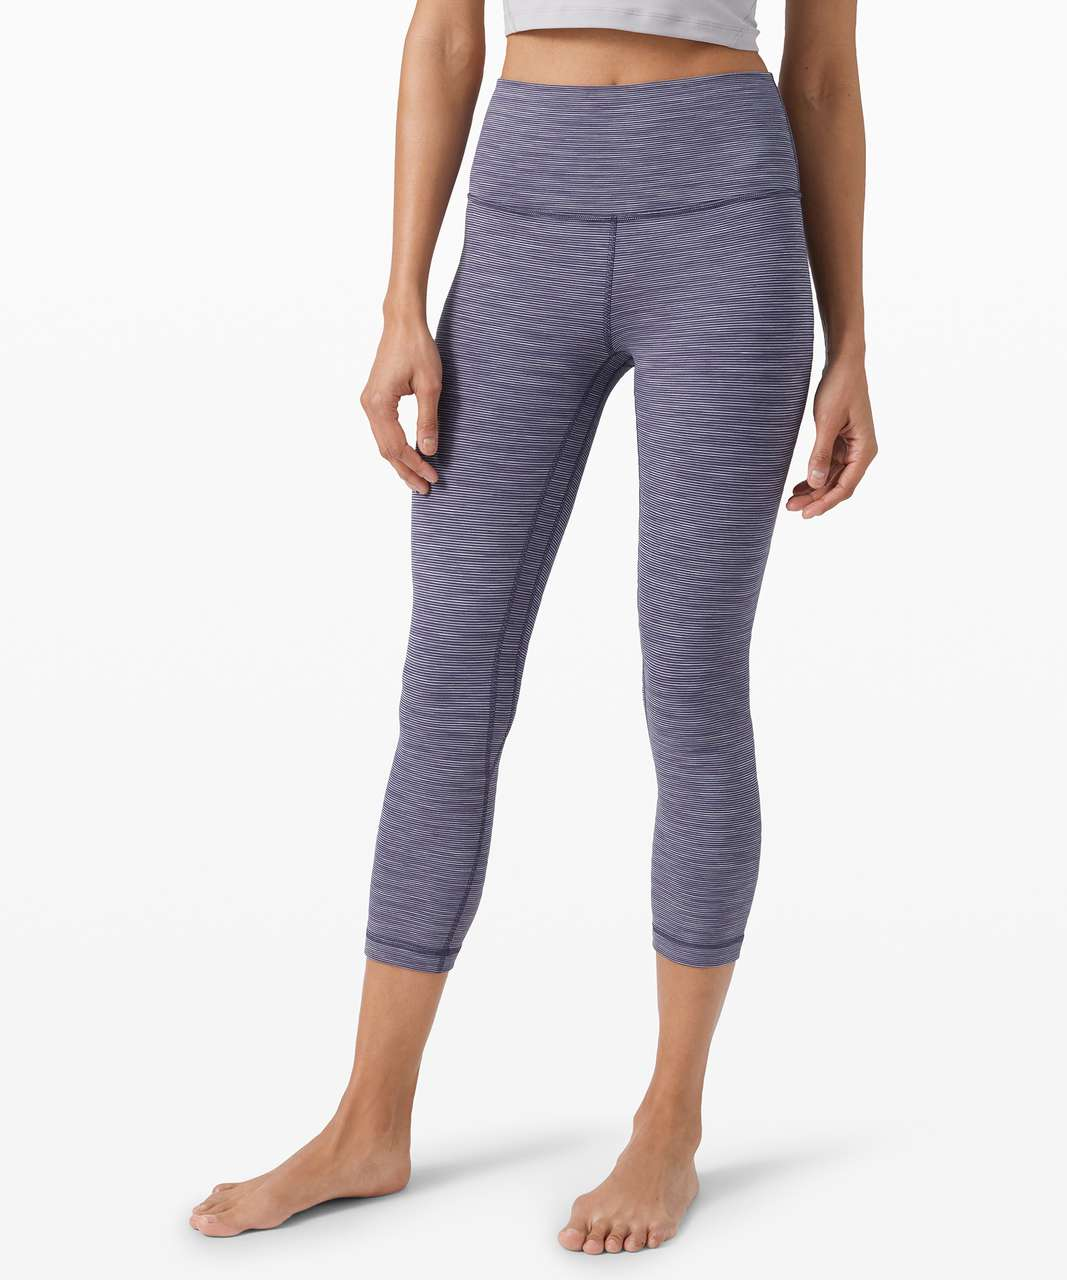 """Lululemon Align Crop *21"""" - Wee Are From Space Greyvy Persian Violet"""